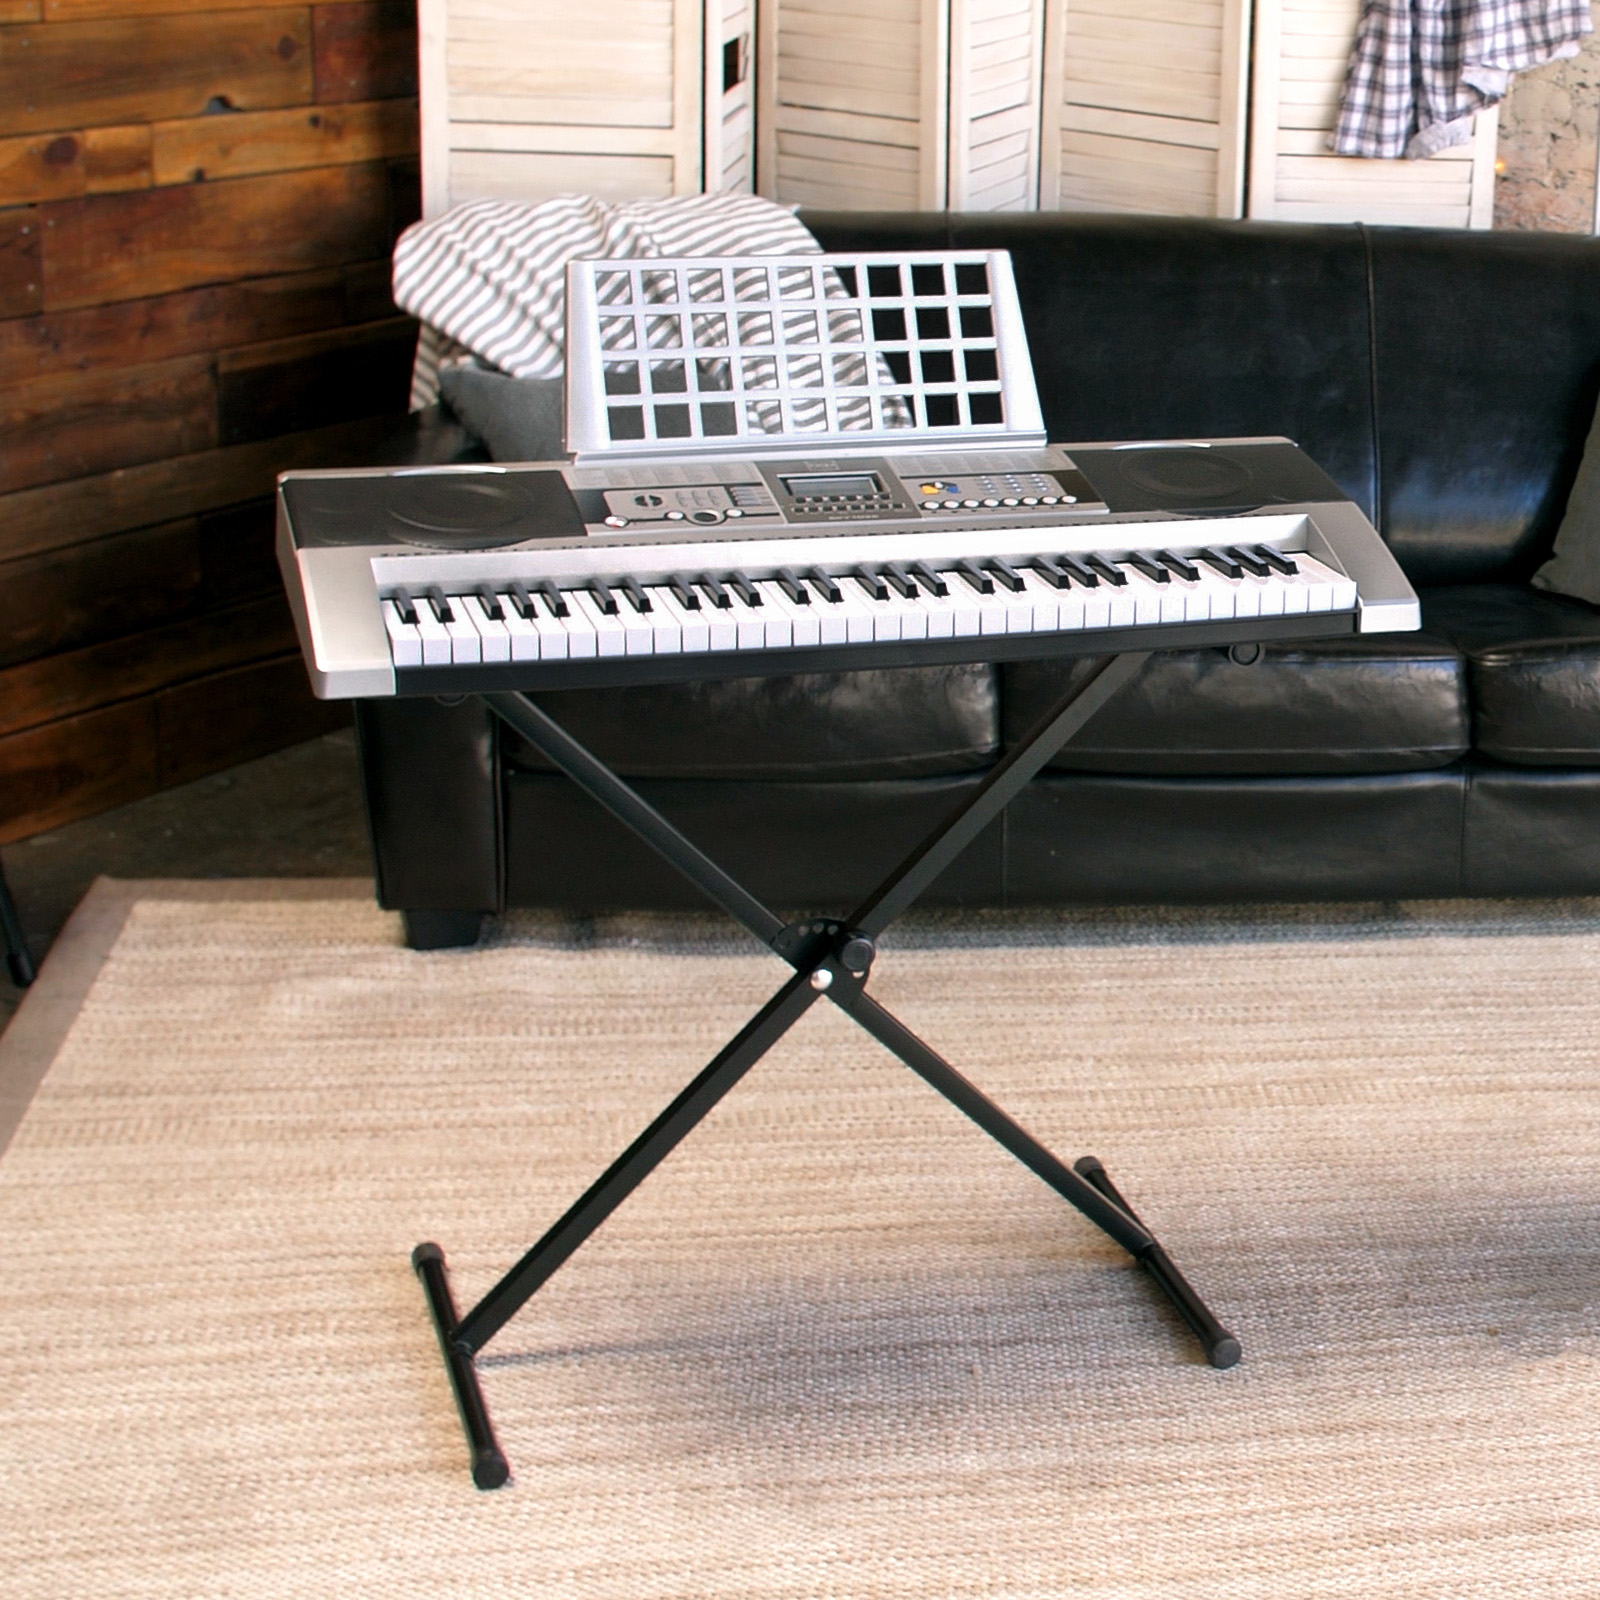 Best choice products 61 key beginner electronic digital keyboard best choice products 61 key beginner electronic digital keyboard piano w adjustable stand power supply speakers walmart fandeluxe Choice Image